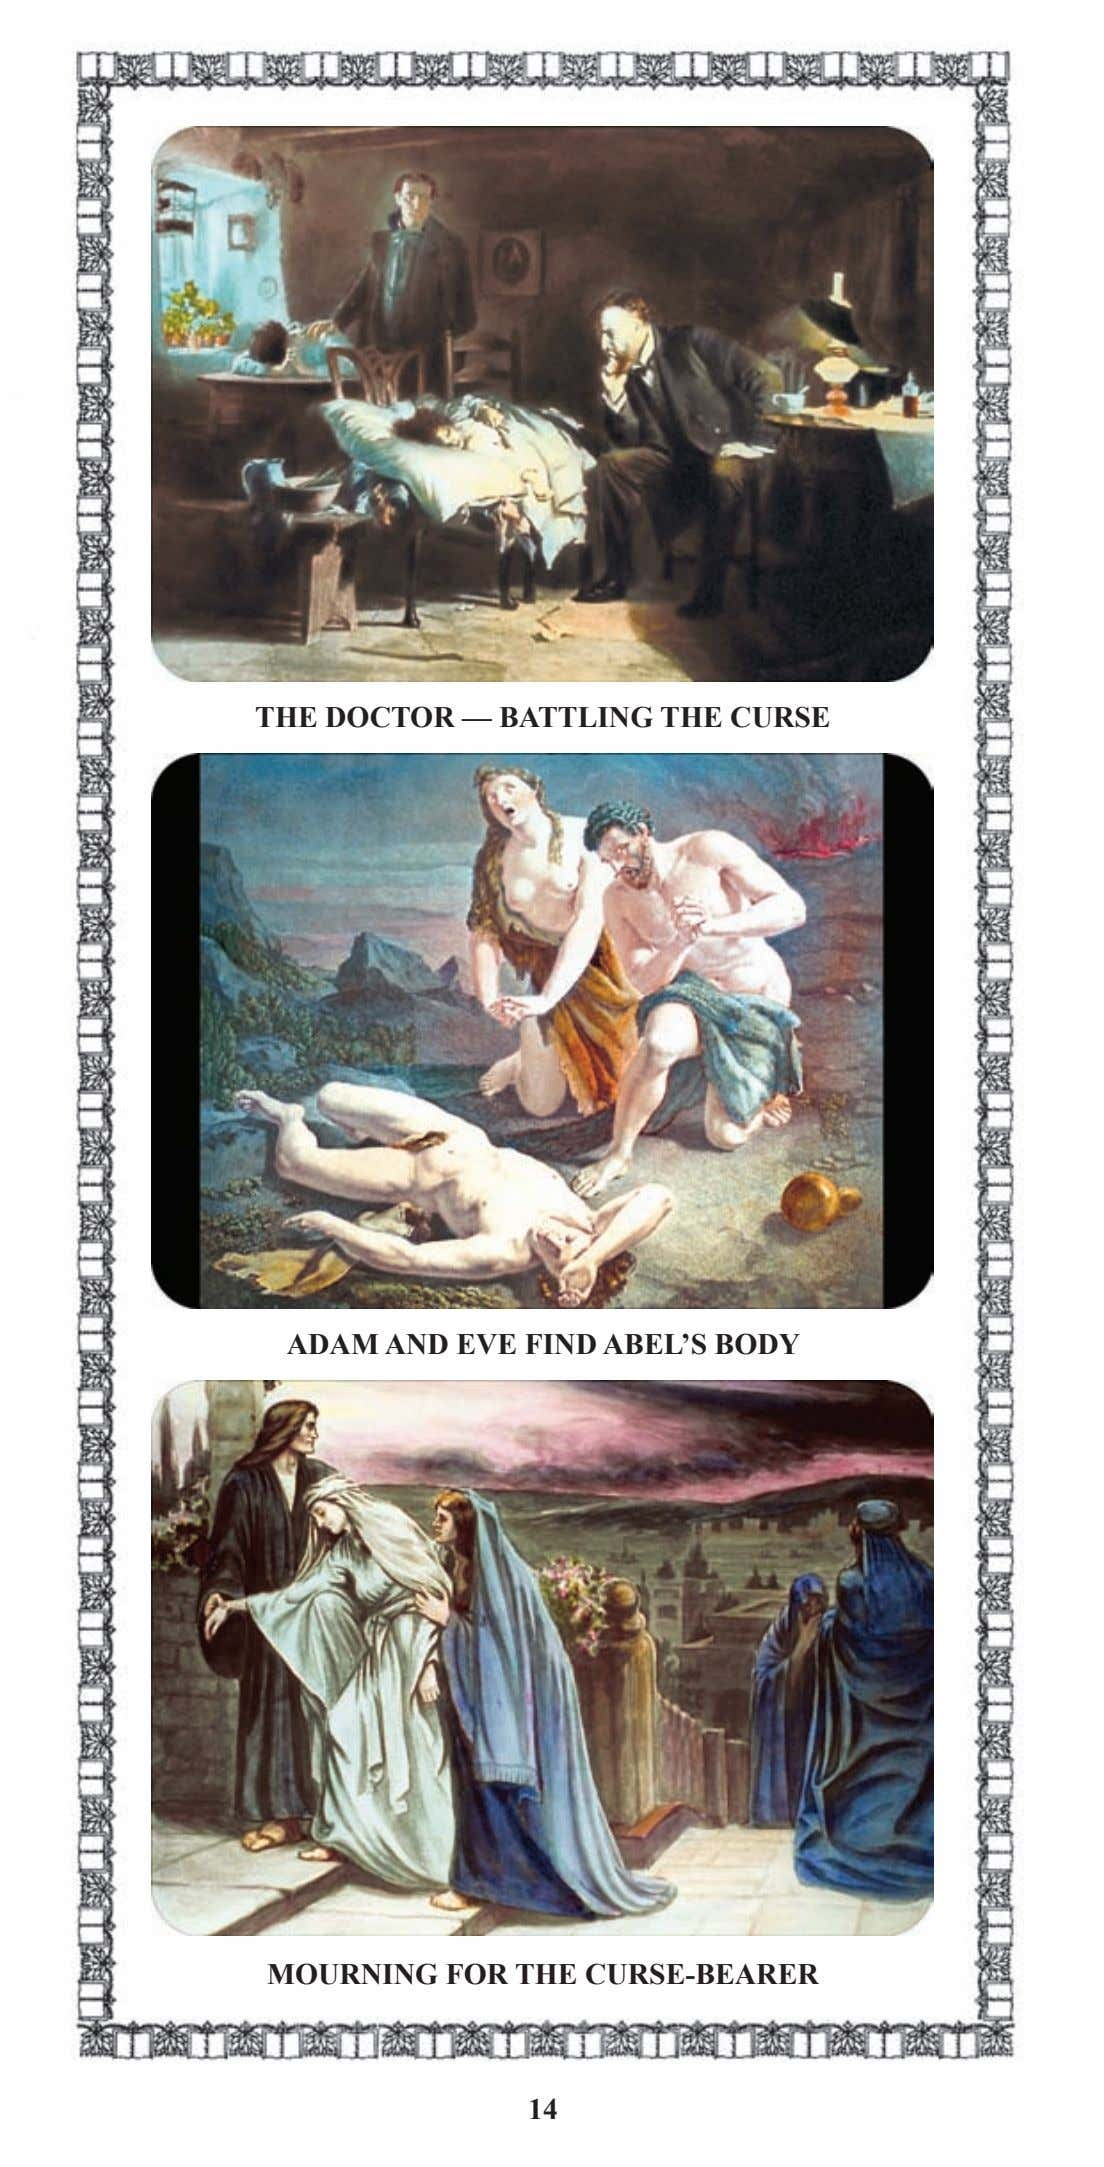 THE DOCTOR — BATTLING THE CURSE ADAM AND EVE FIND ABEL'S BODY MOURNING FOR THE